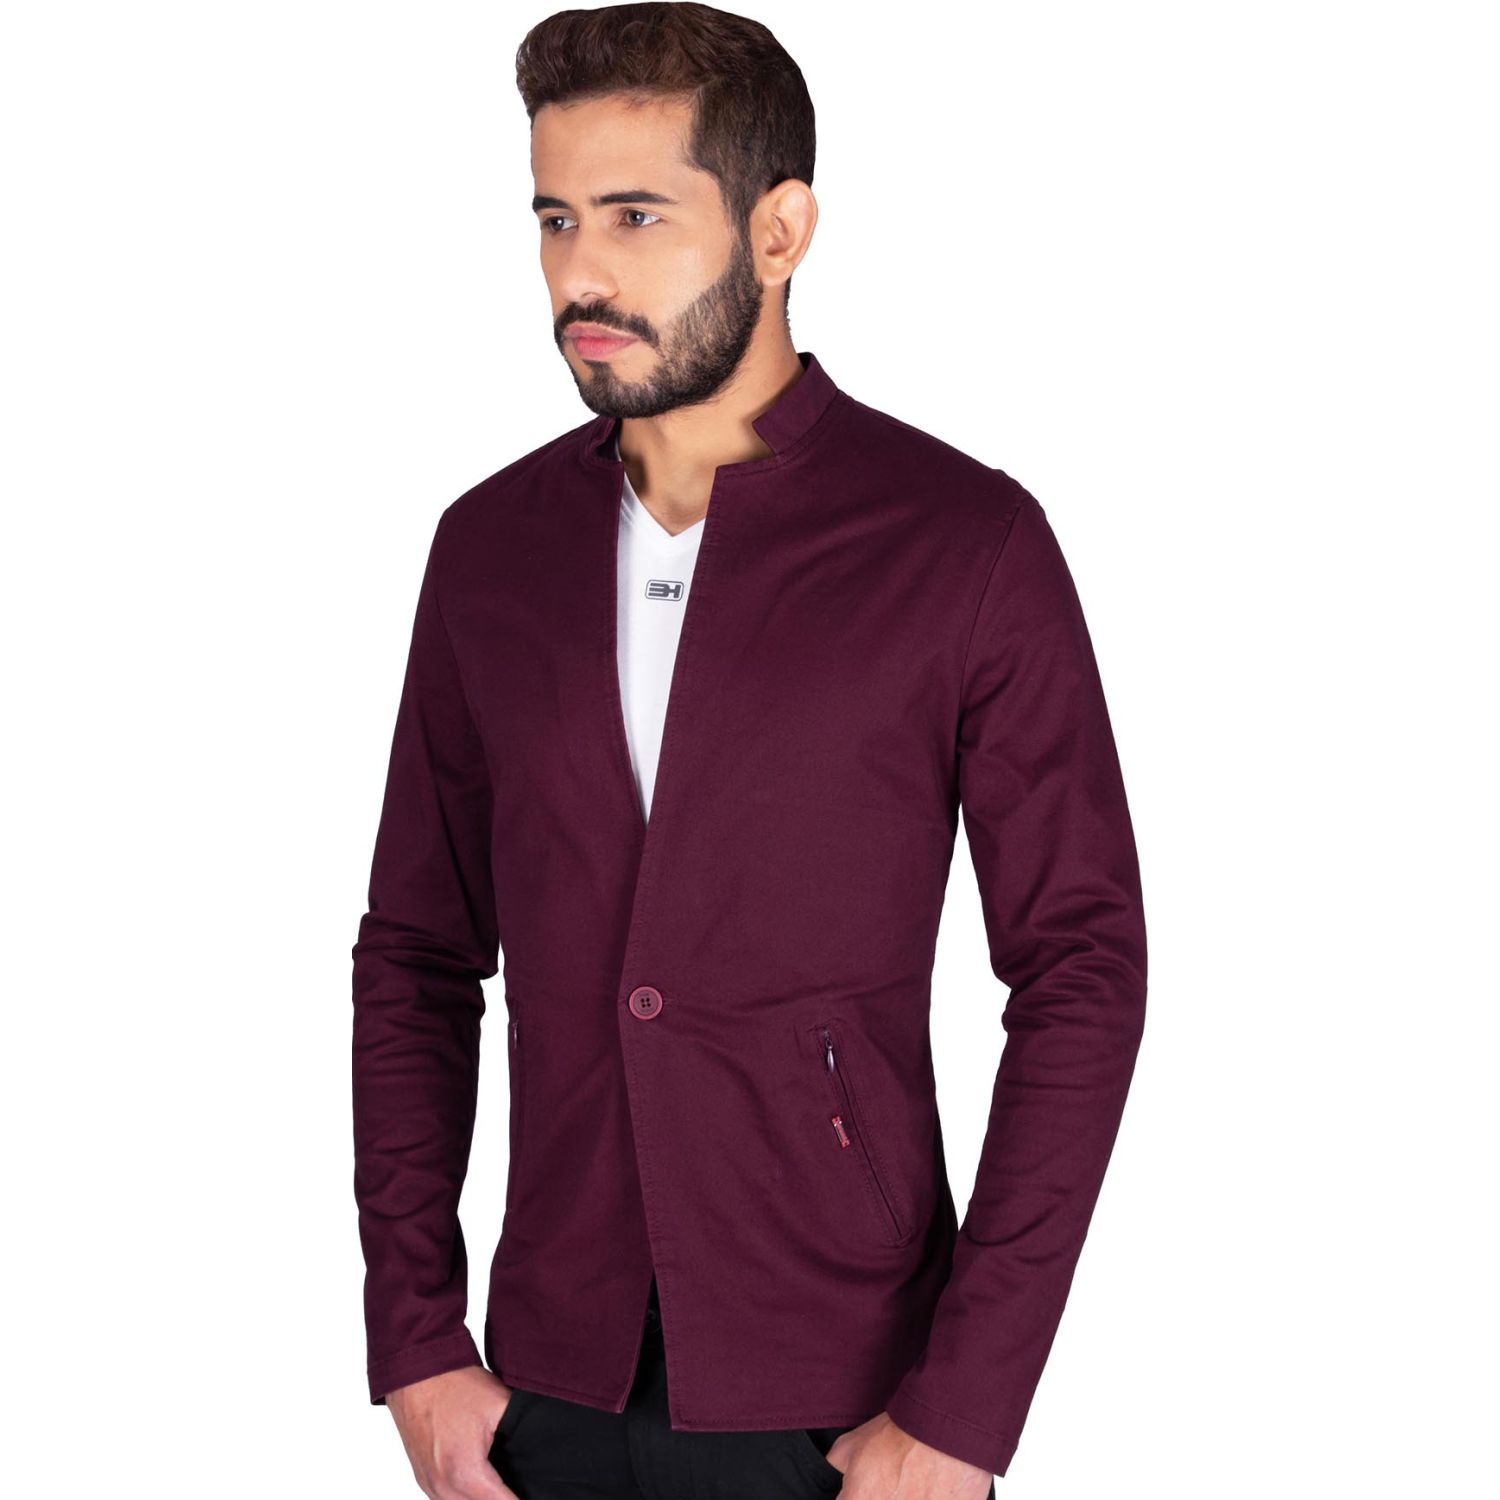 The Cult Blazer Drill, Slim Fit Burgundy Abrigos deportivos y blazers